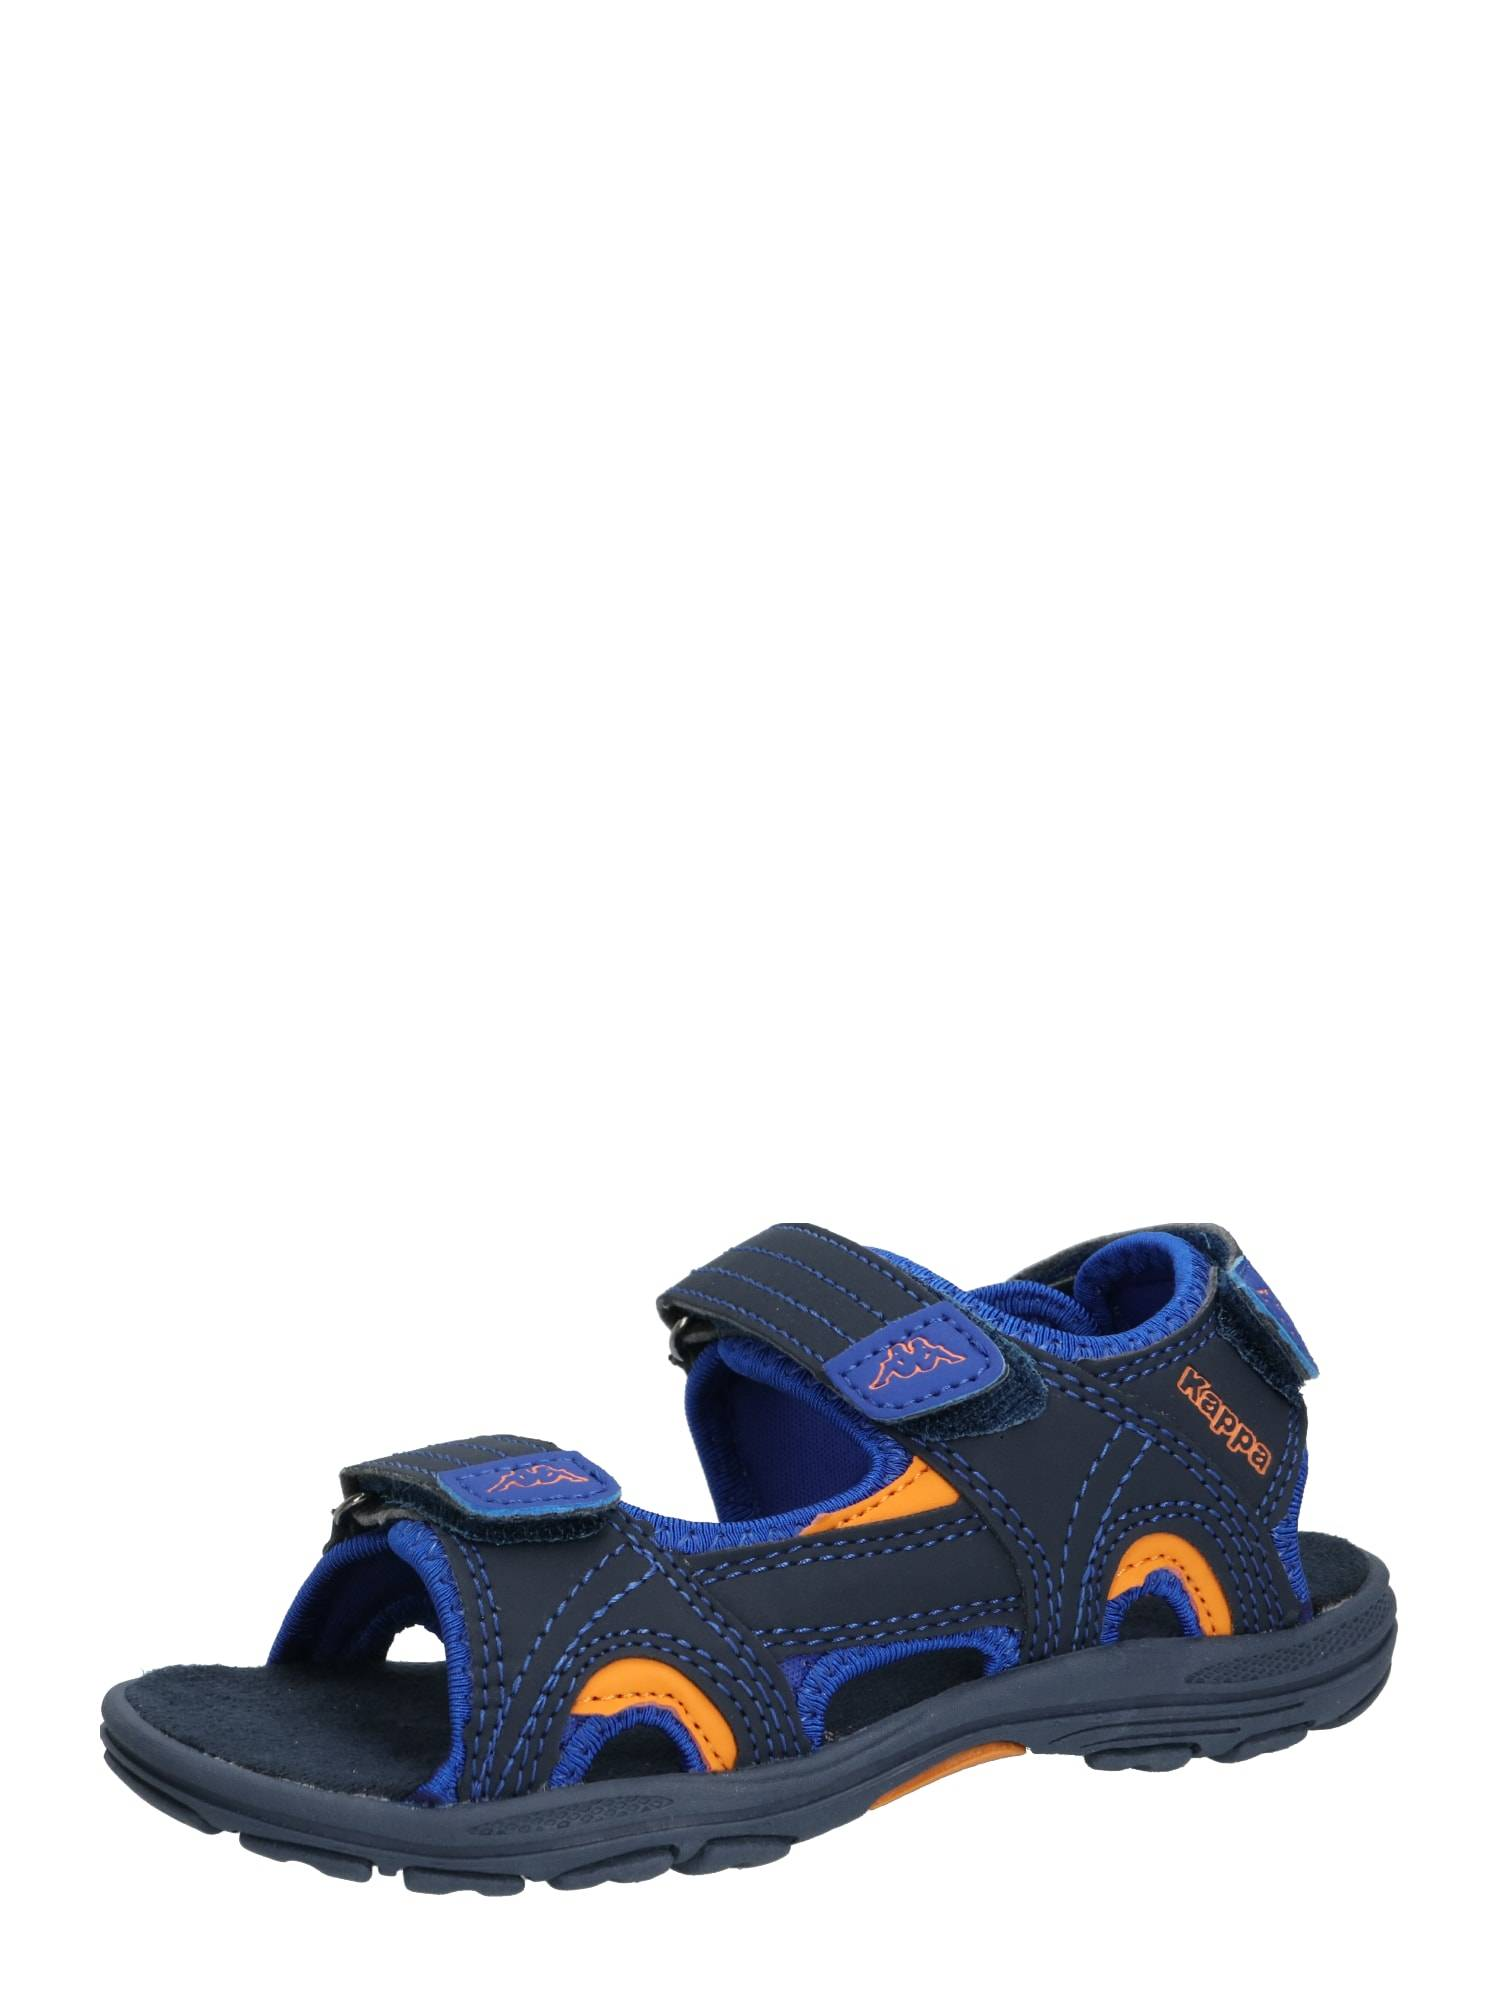 KAPPA Chaussures ouvertes 'Early II'  - Bleu - Taille: 26 - boy